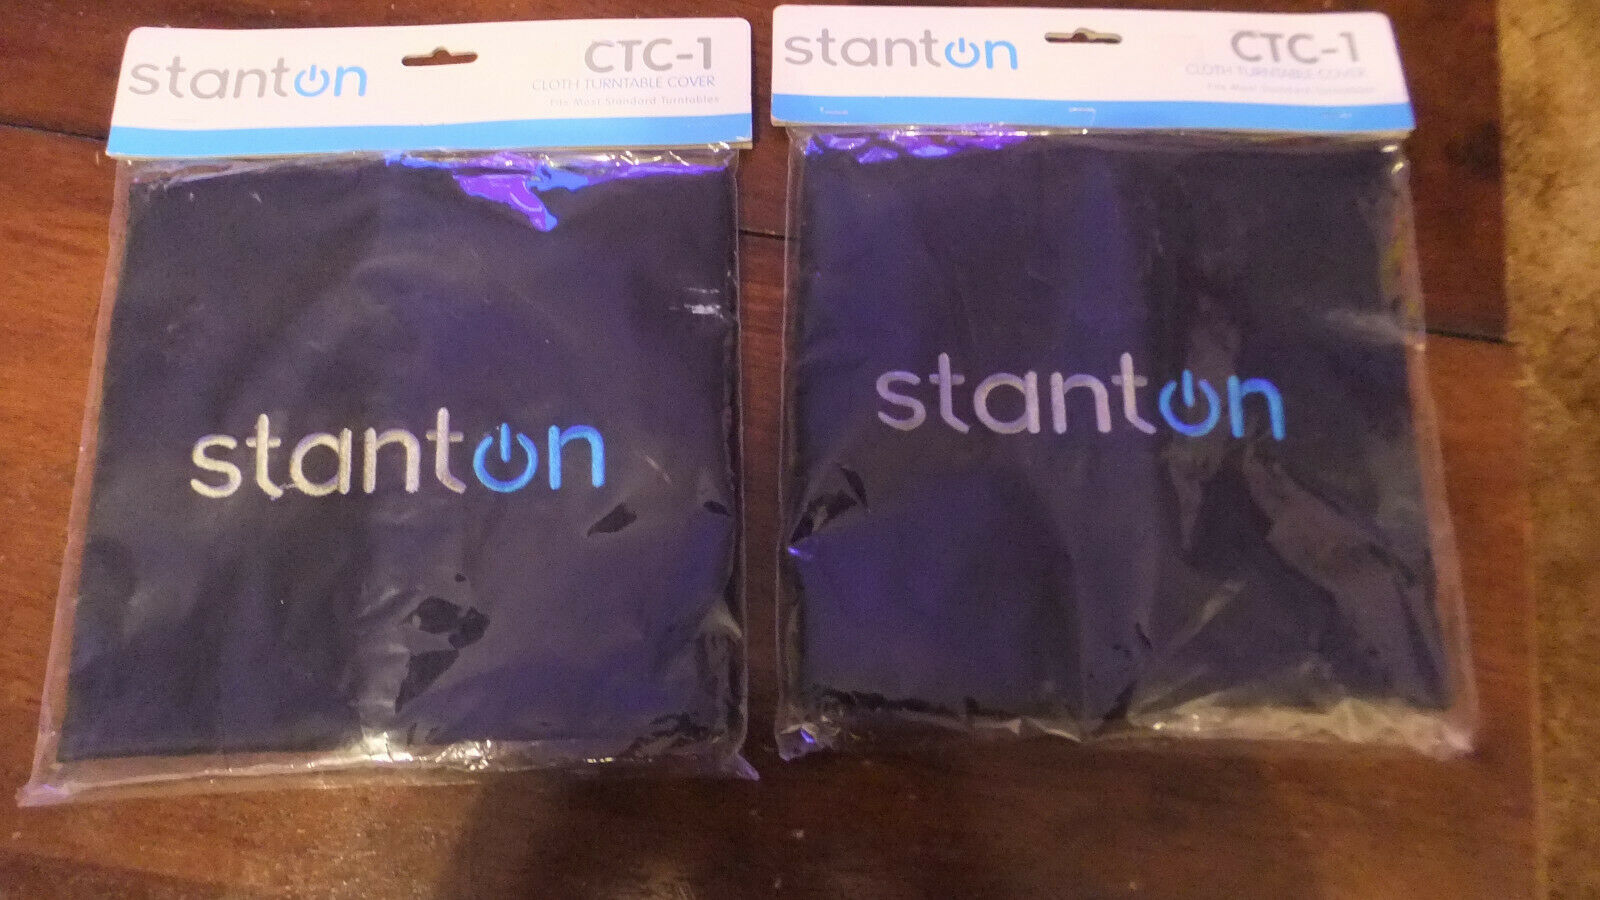 Stanton CTC-1 Cloth Turntable Cover